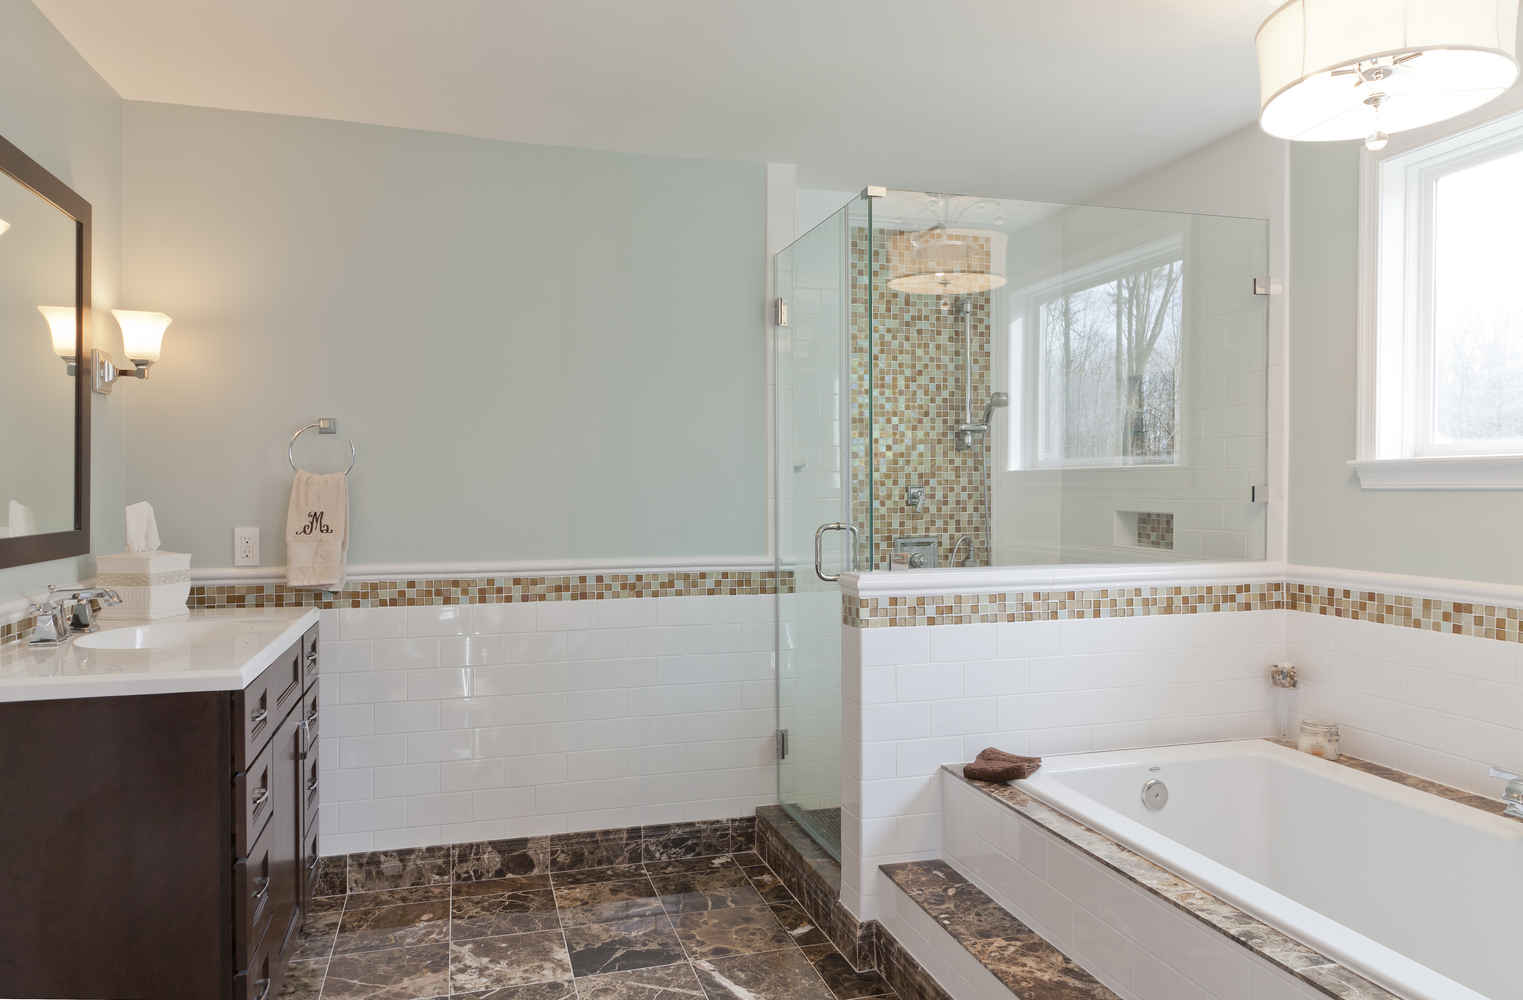 Bathroom Renovation amp Remodeling in Northern Virginia